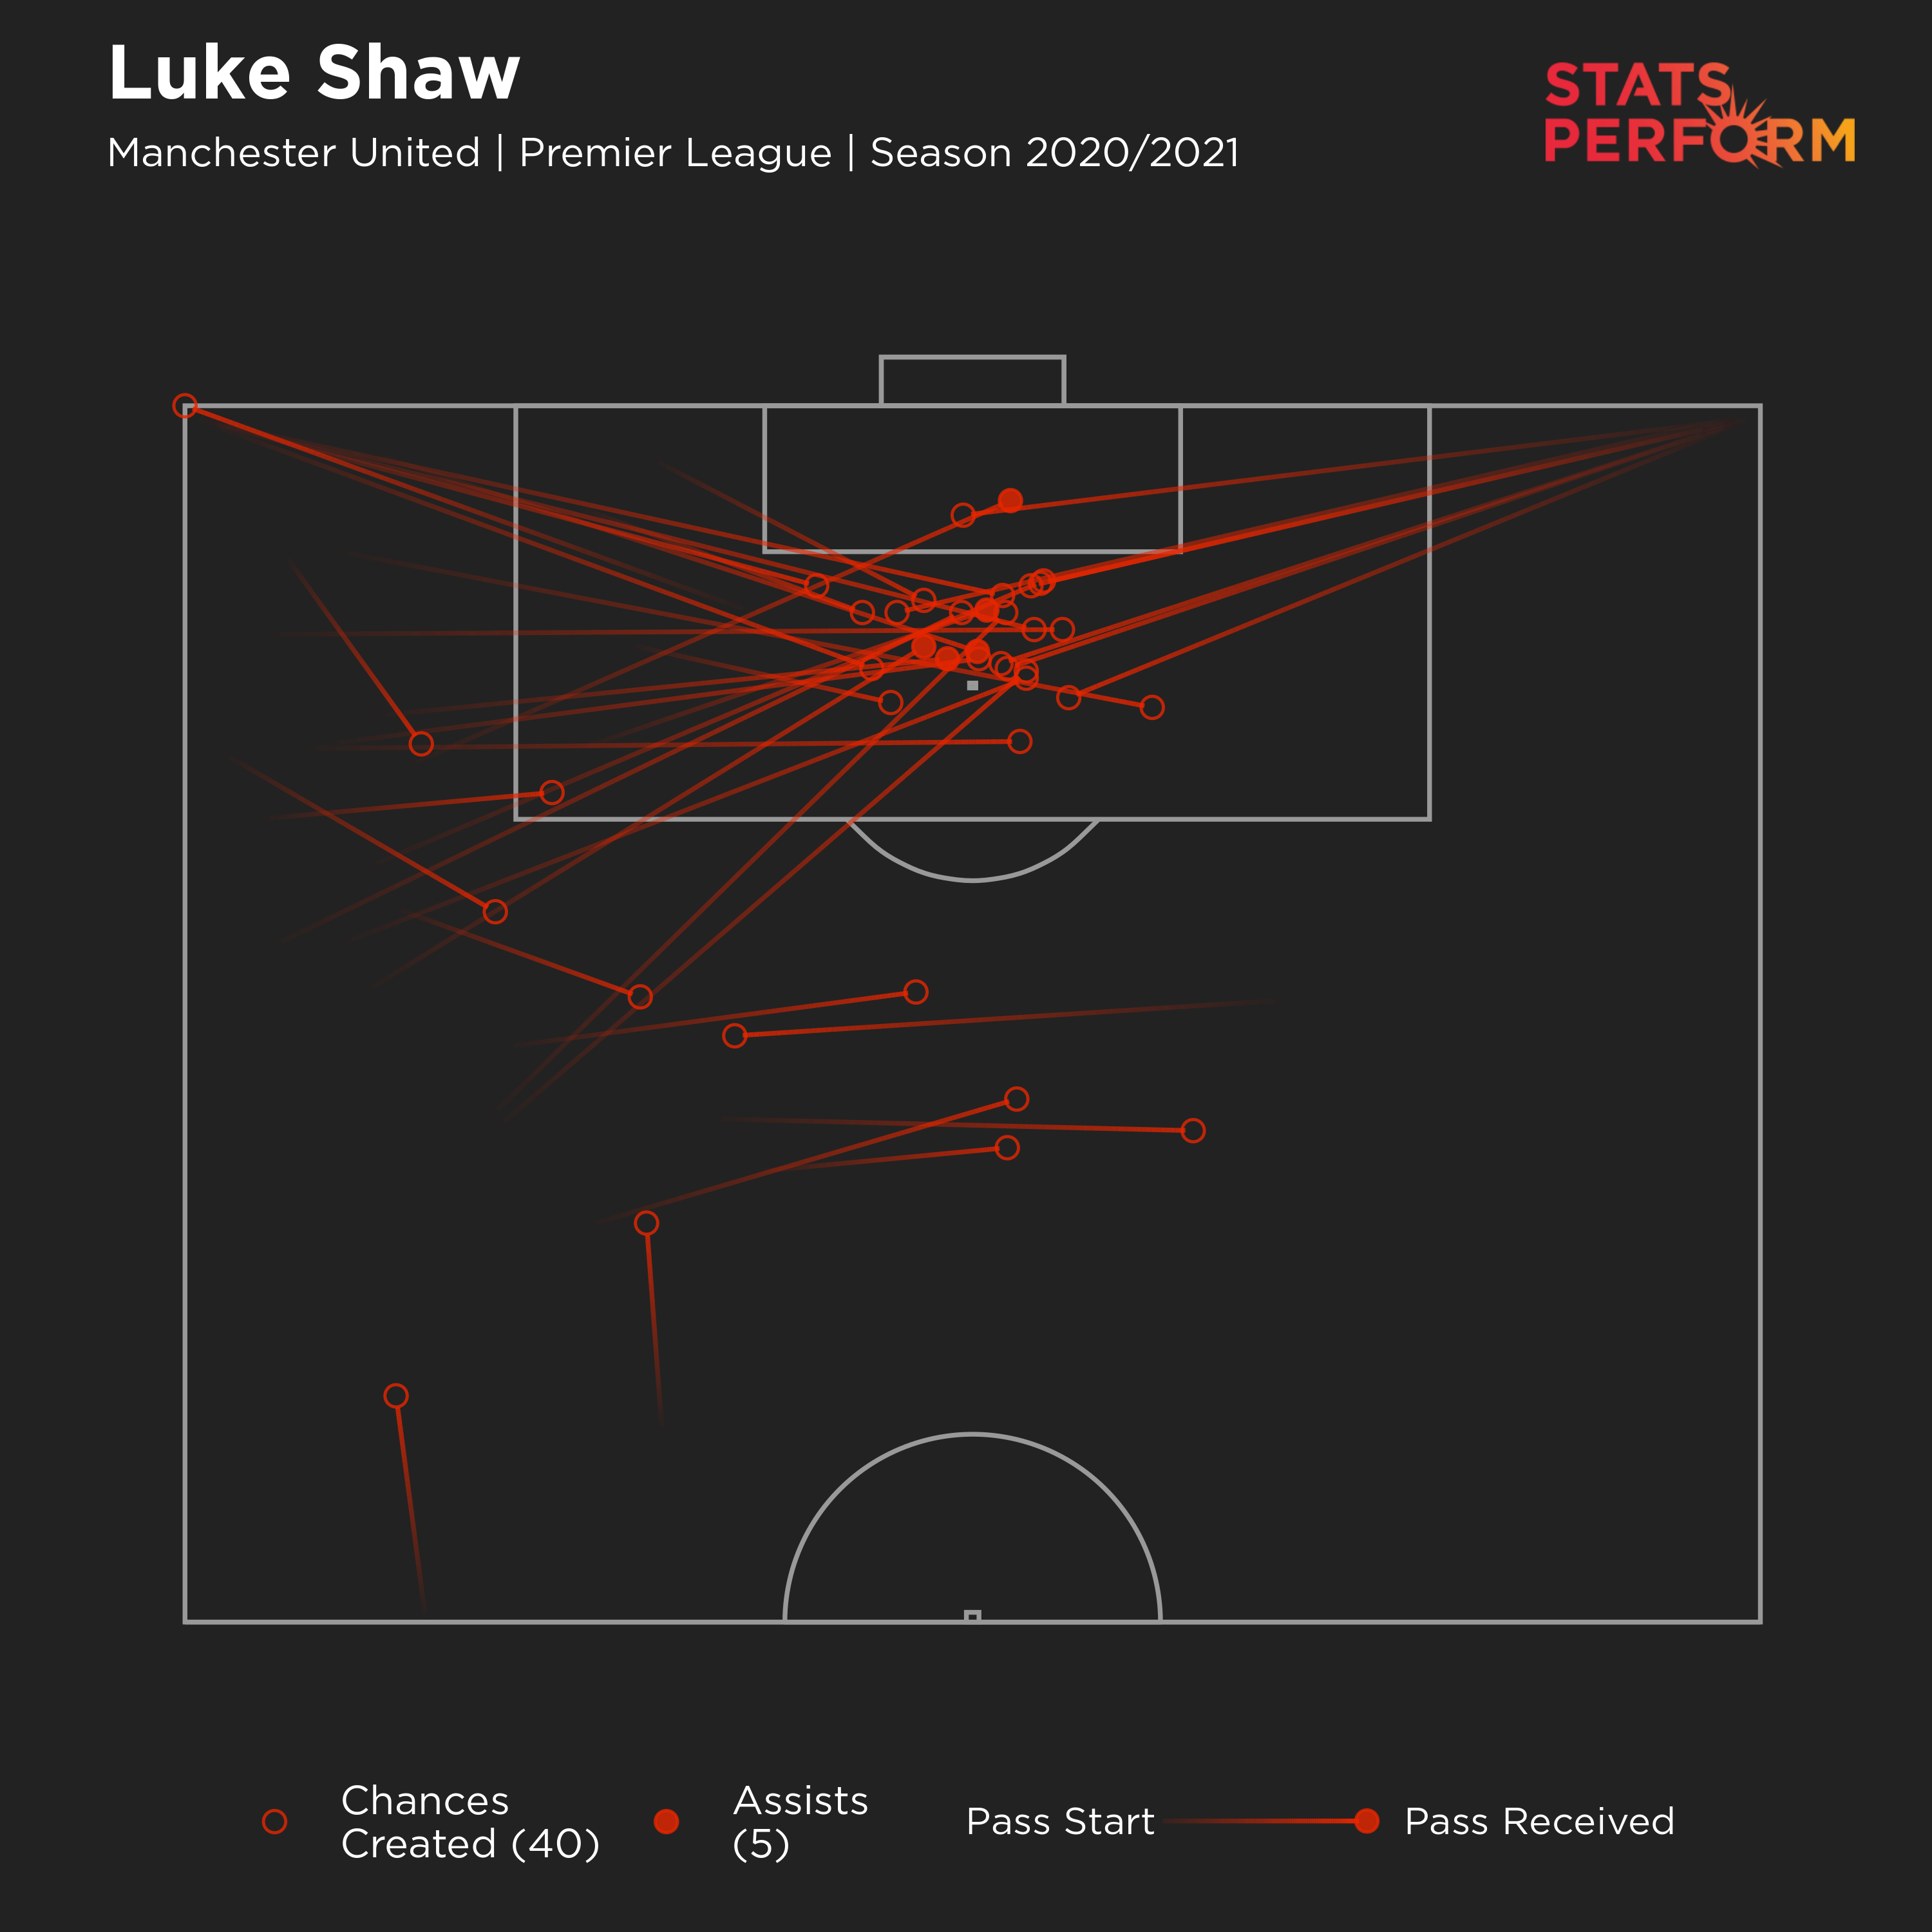 Luke Shaw's chances created map for 2020-21